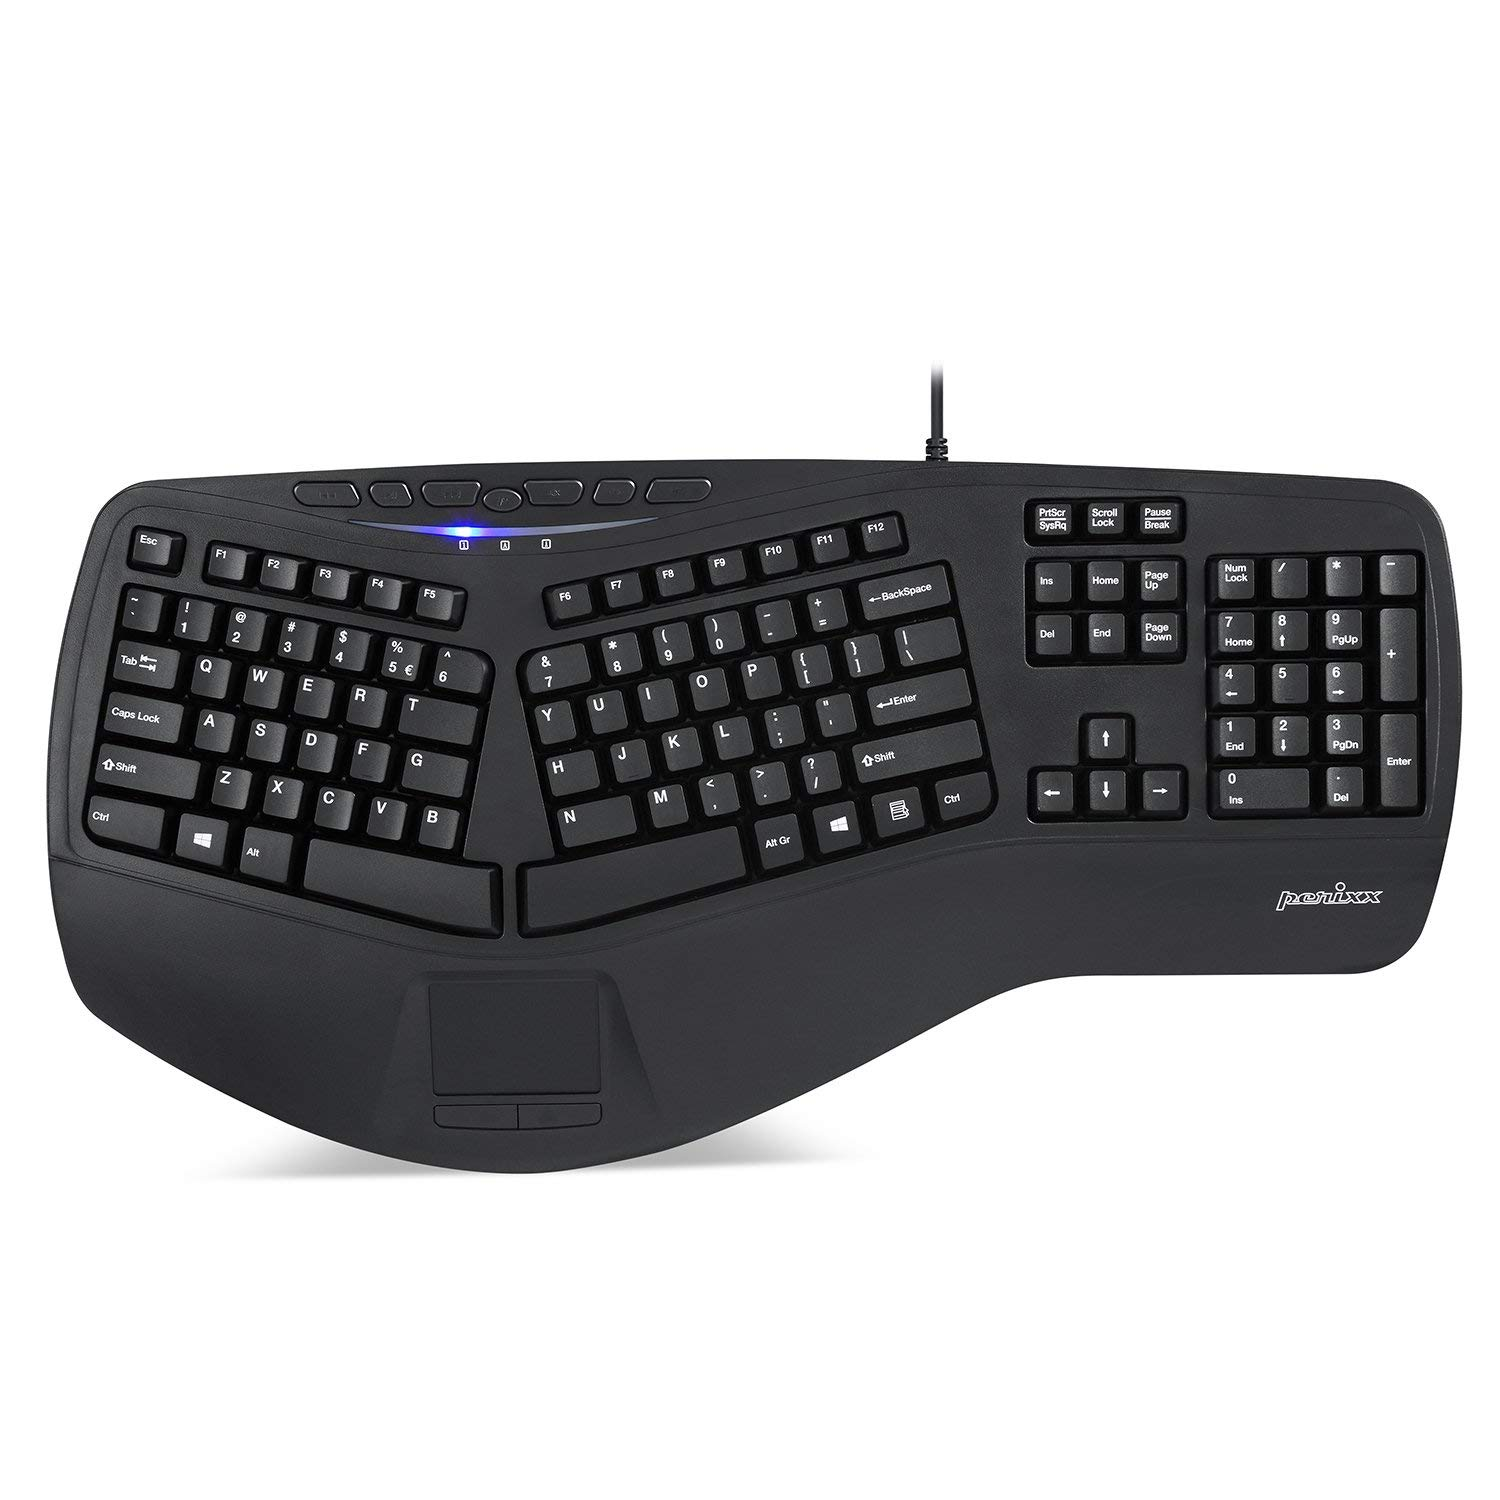 3fa6a50cd62 Get Quotations · Perixx 11348 PERIBOARD-507II Ergonomic Wired USB Keyboard  with Touchpad, Tap to Click Feature